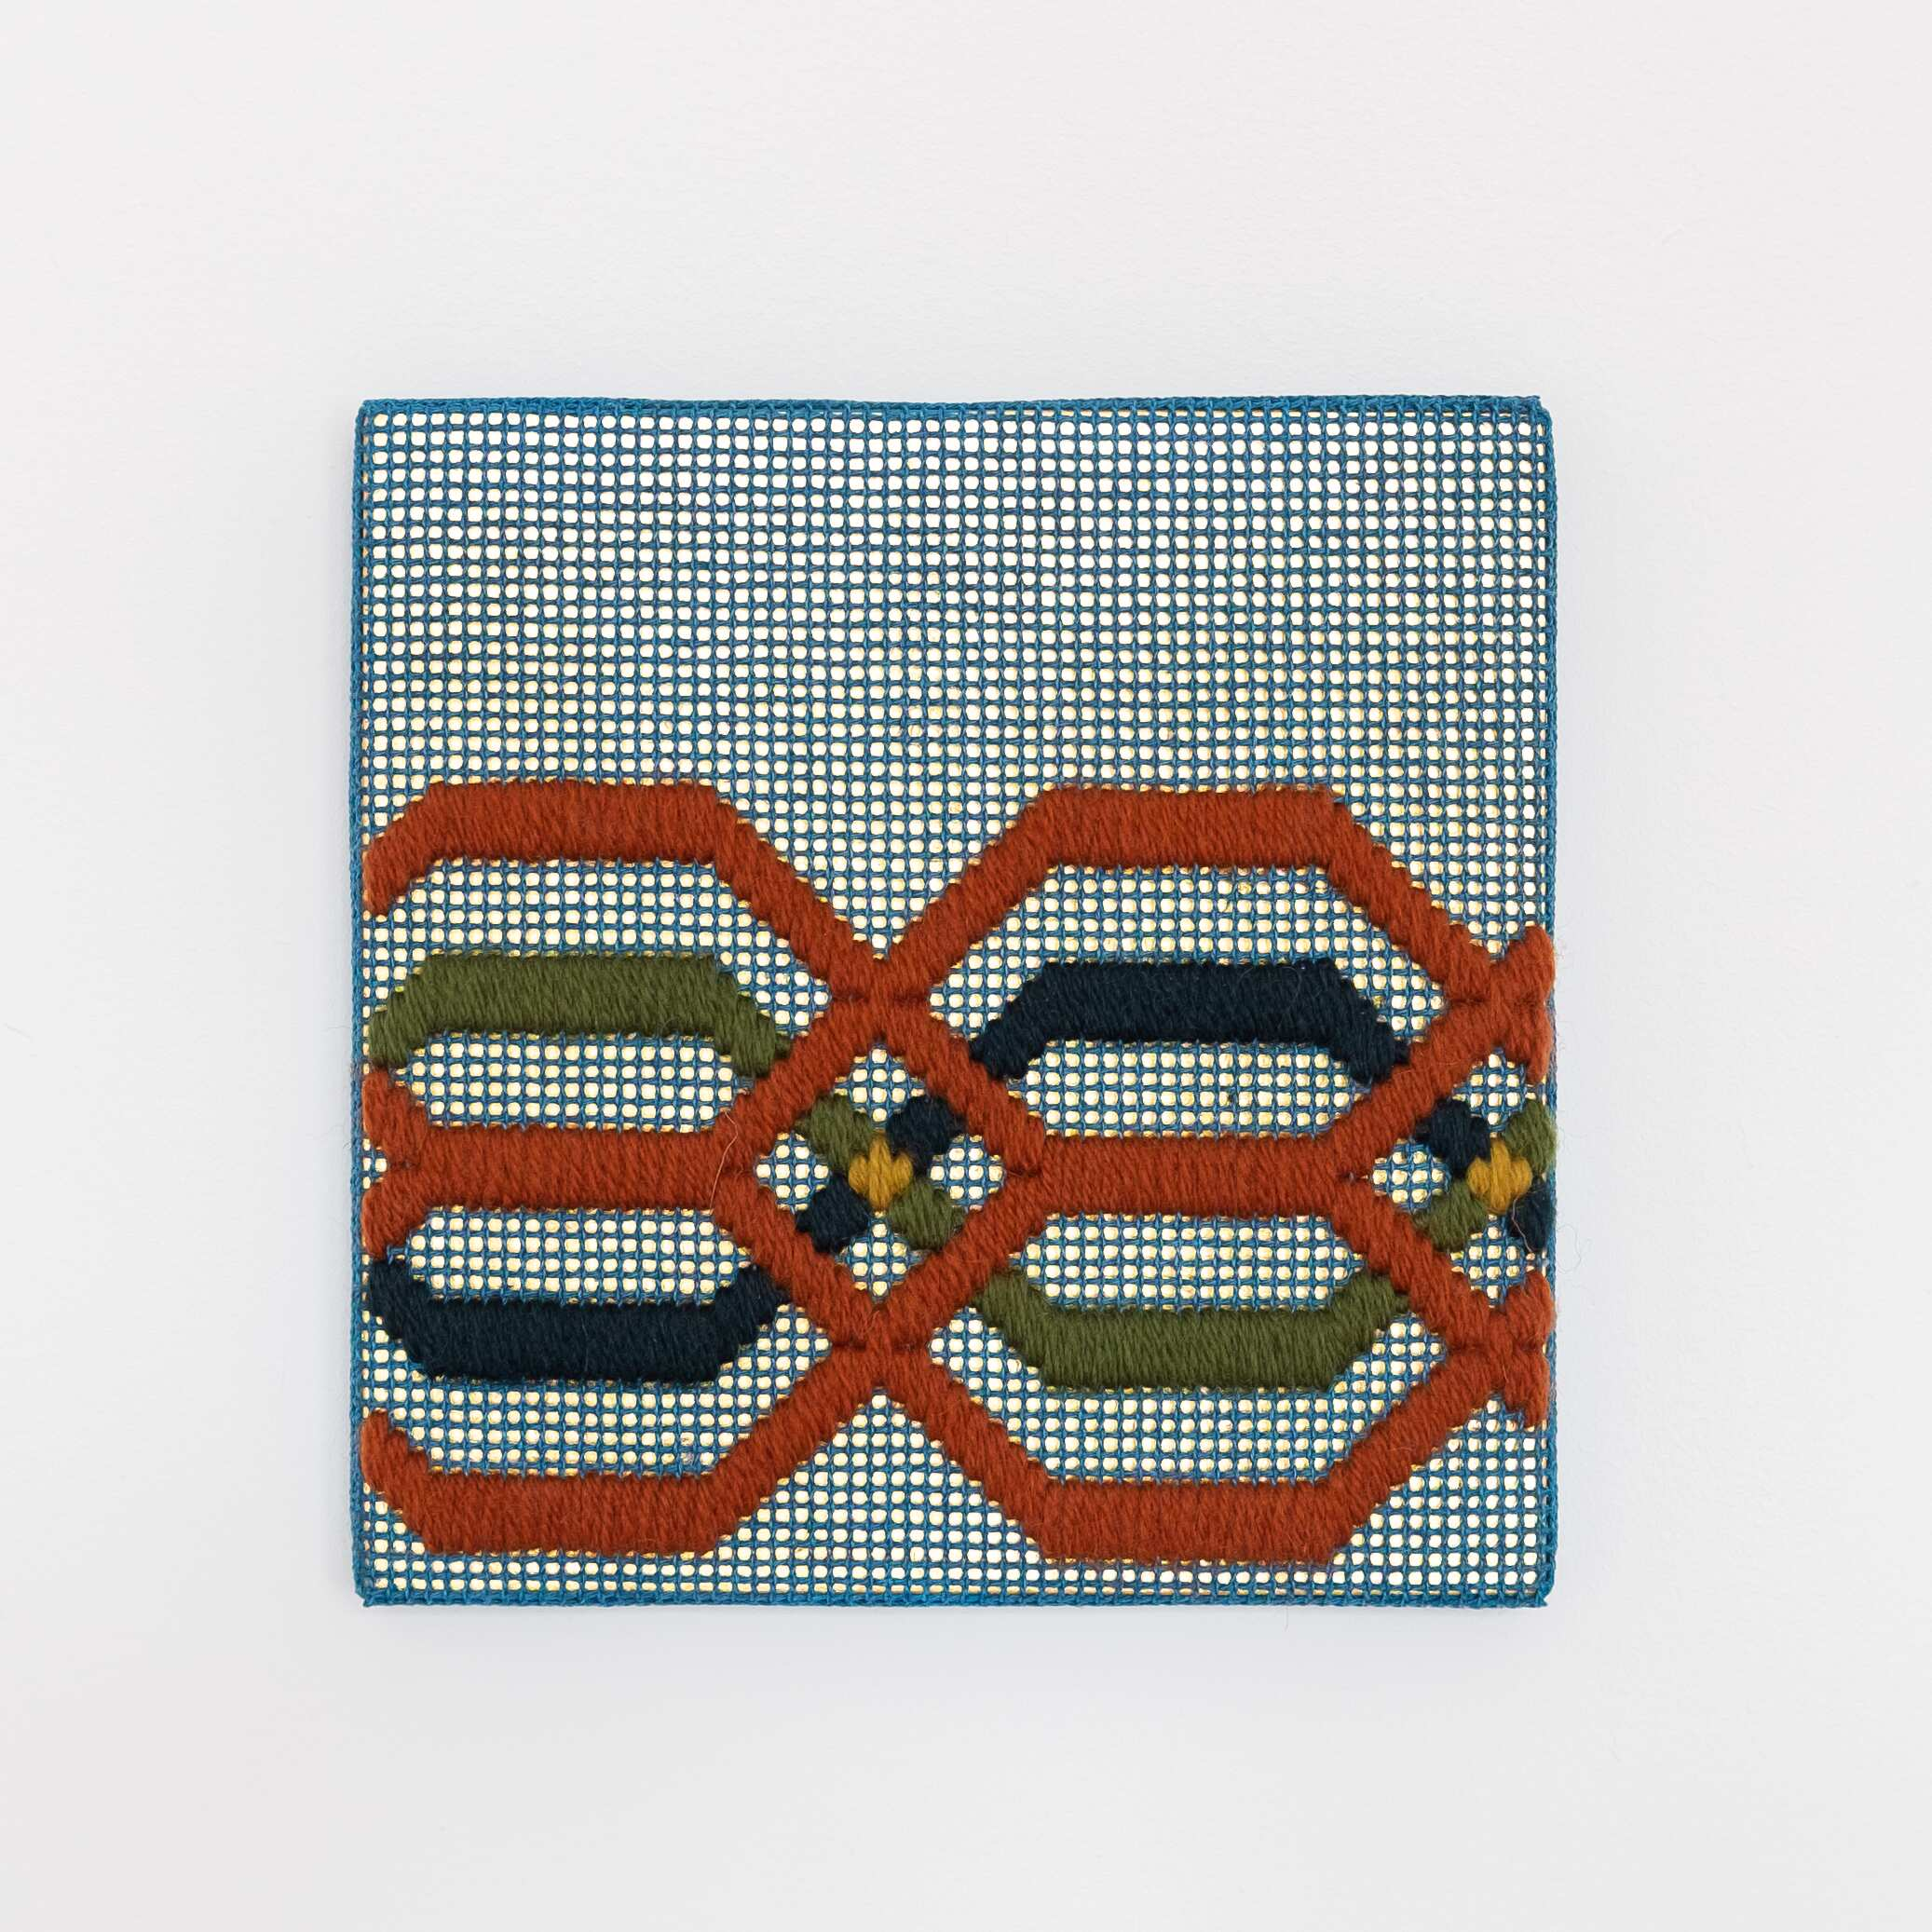 Border fragment [rust-green-blue on blue], Hand-embroidered wool thread and acrylic paint on canvas over gilded panel, 2021